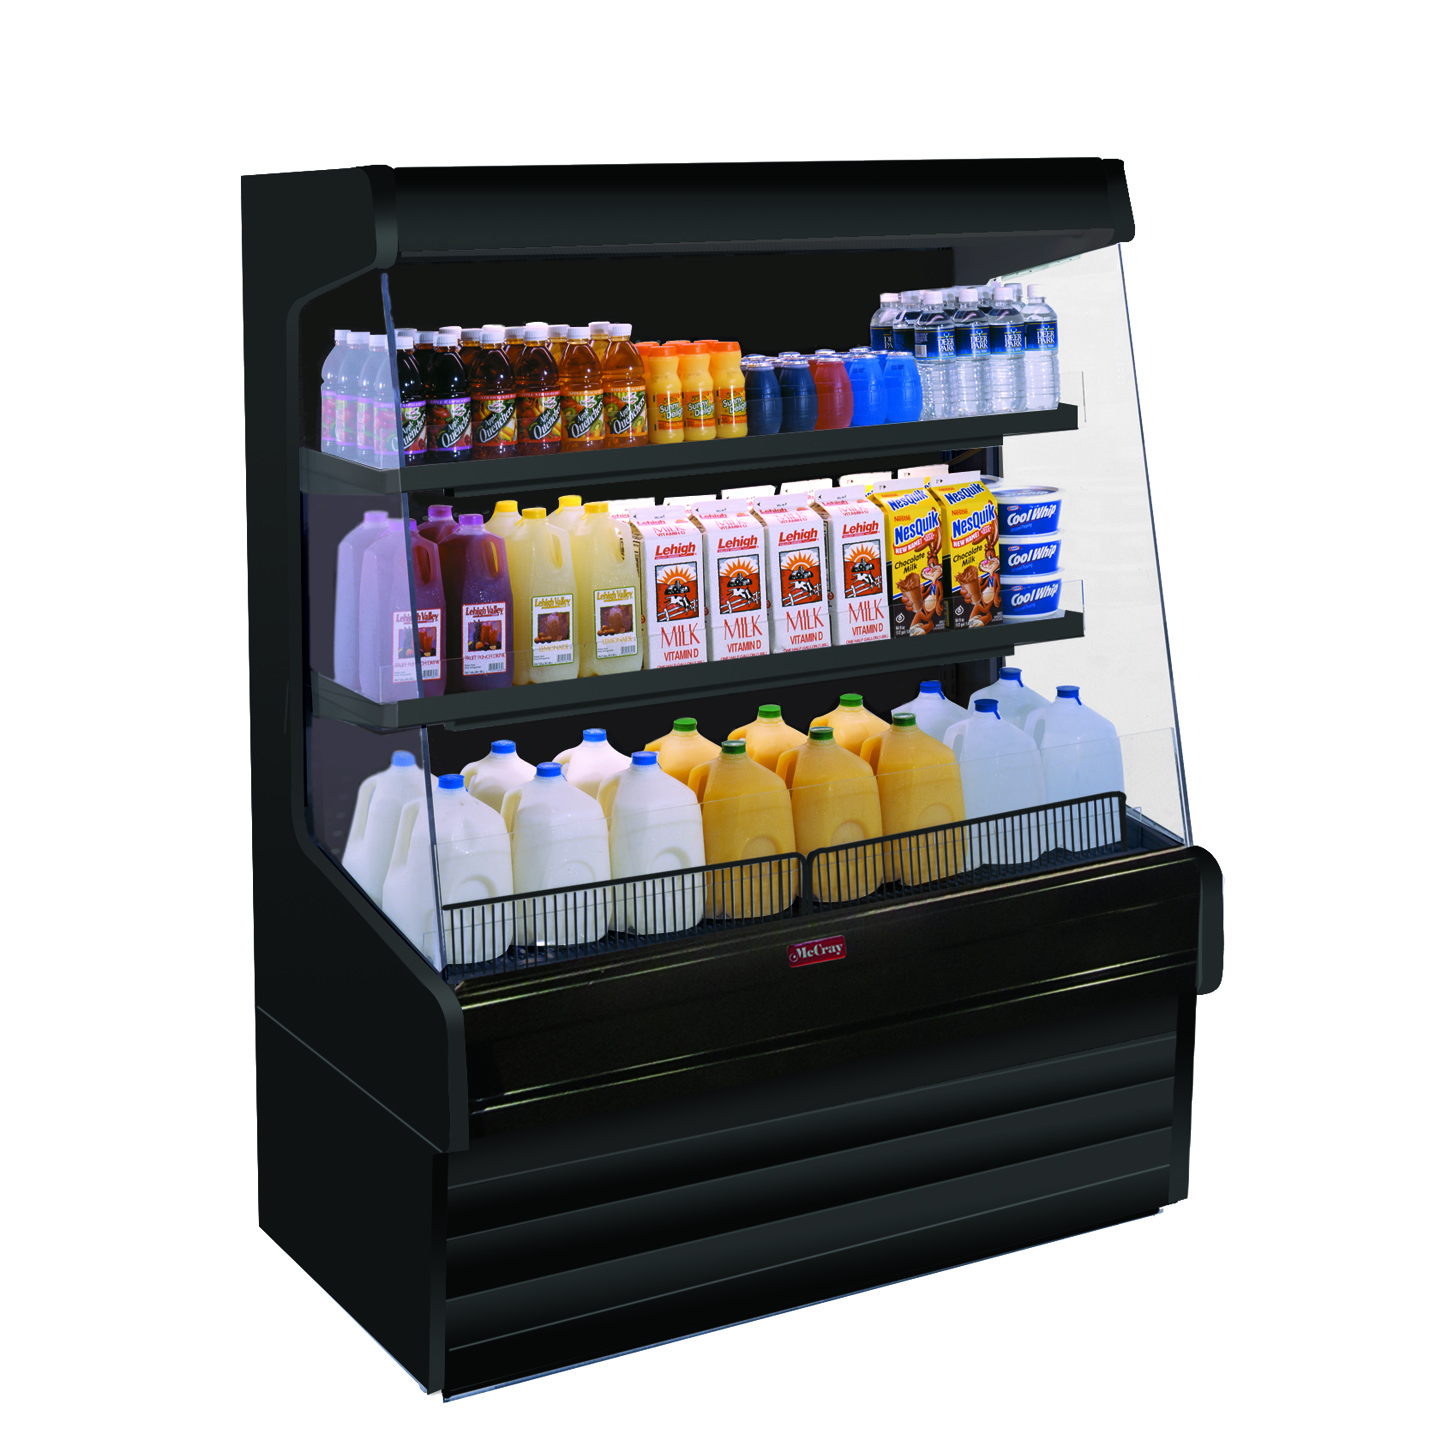 Howard-McCray SC-OD30E-8L-B-LED merchandiser, open refrigerated display